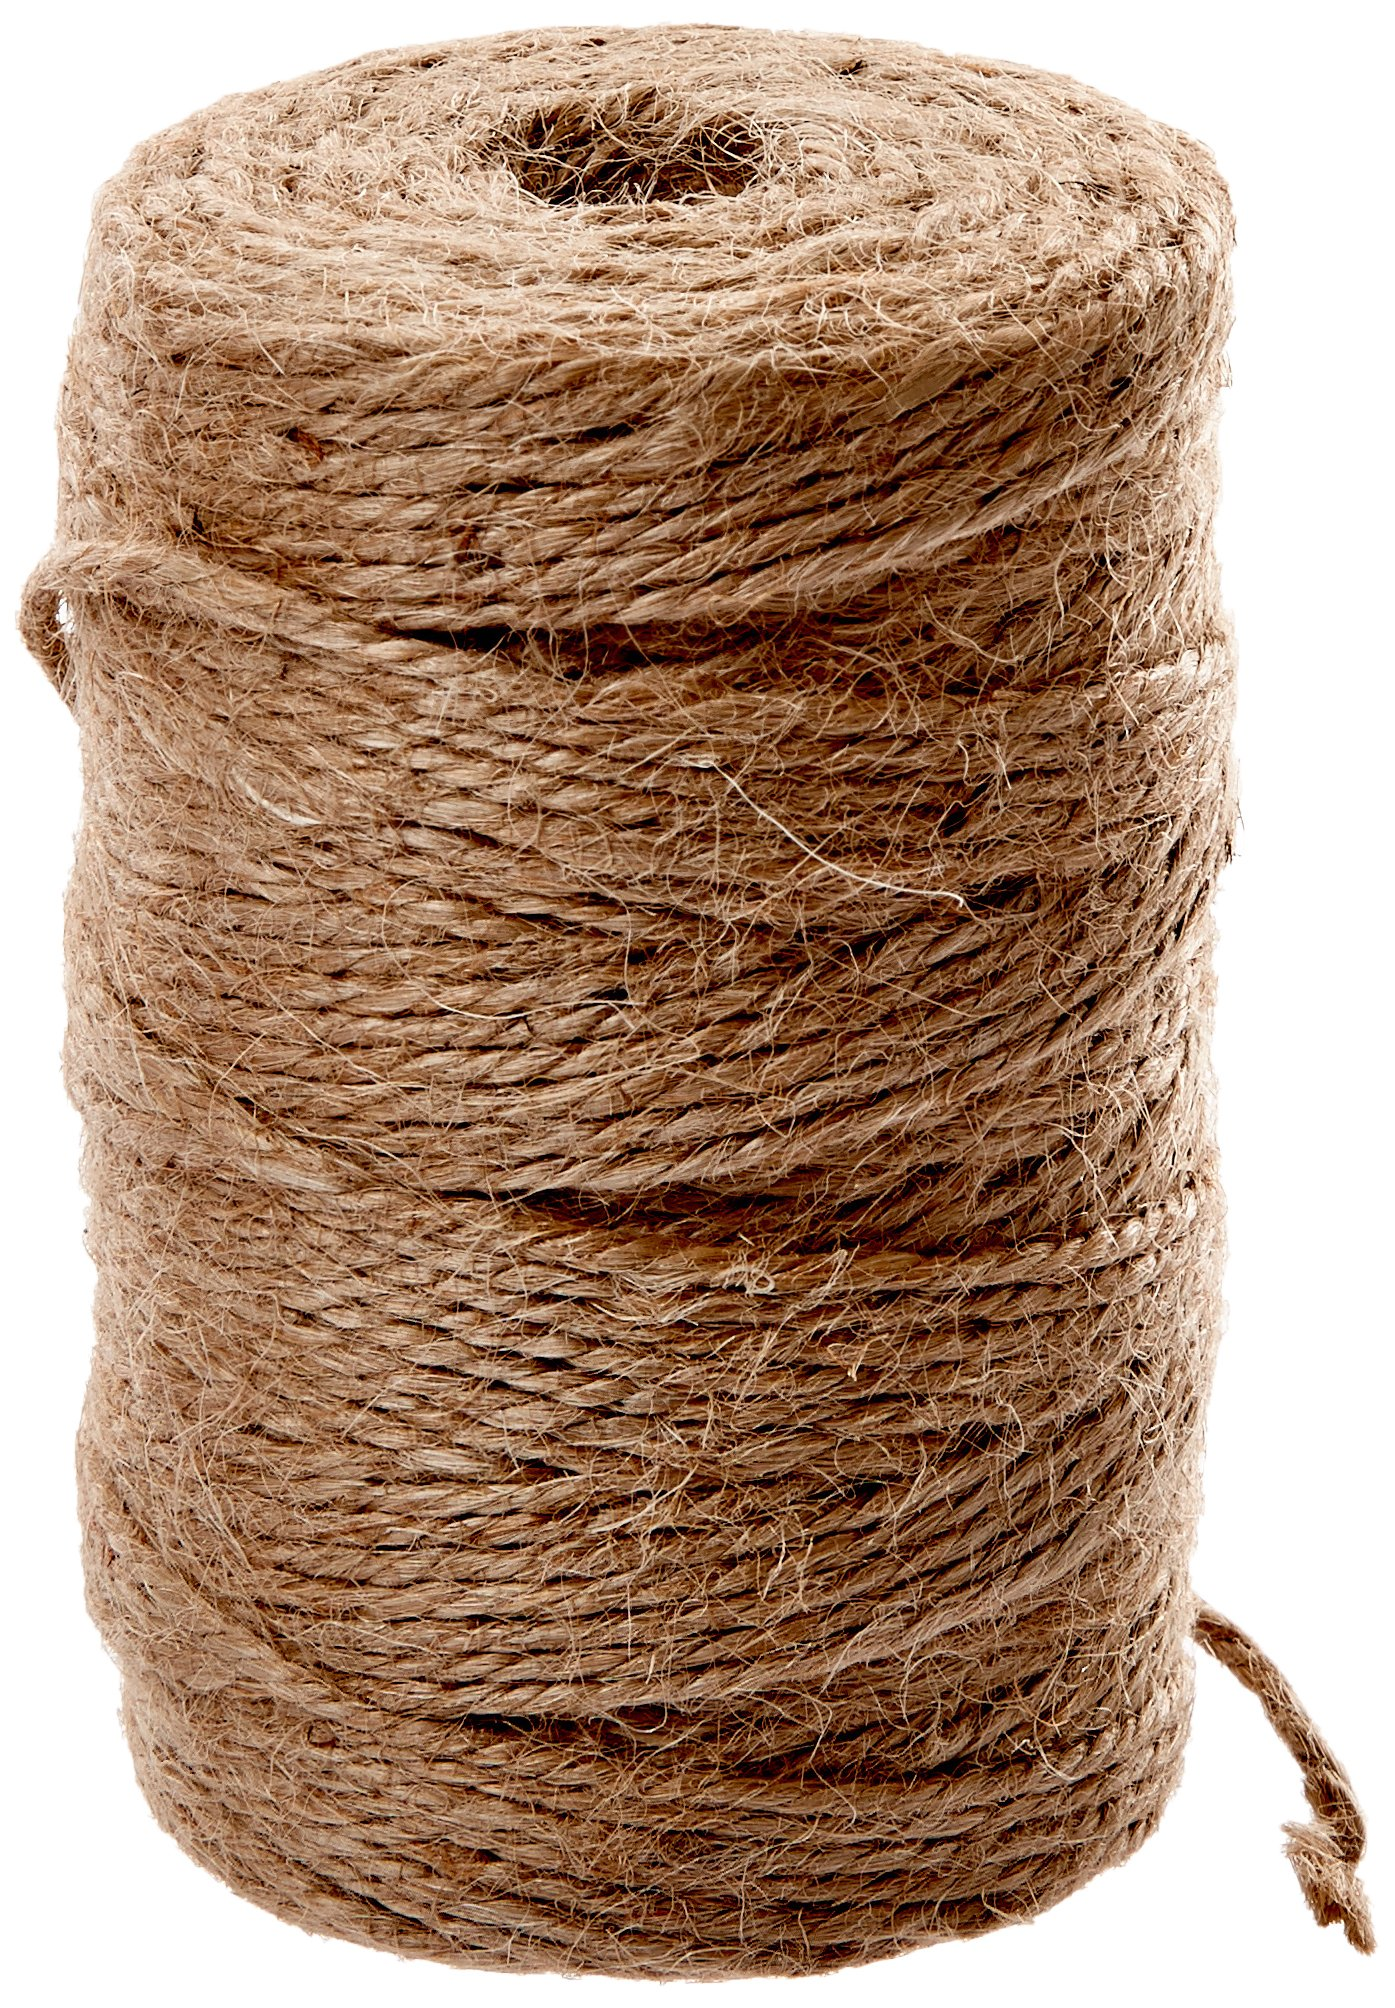 Rope King JT#18335 Heavy Duty Jute Twine, 335' by Rope King